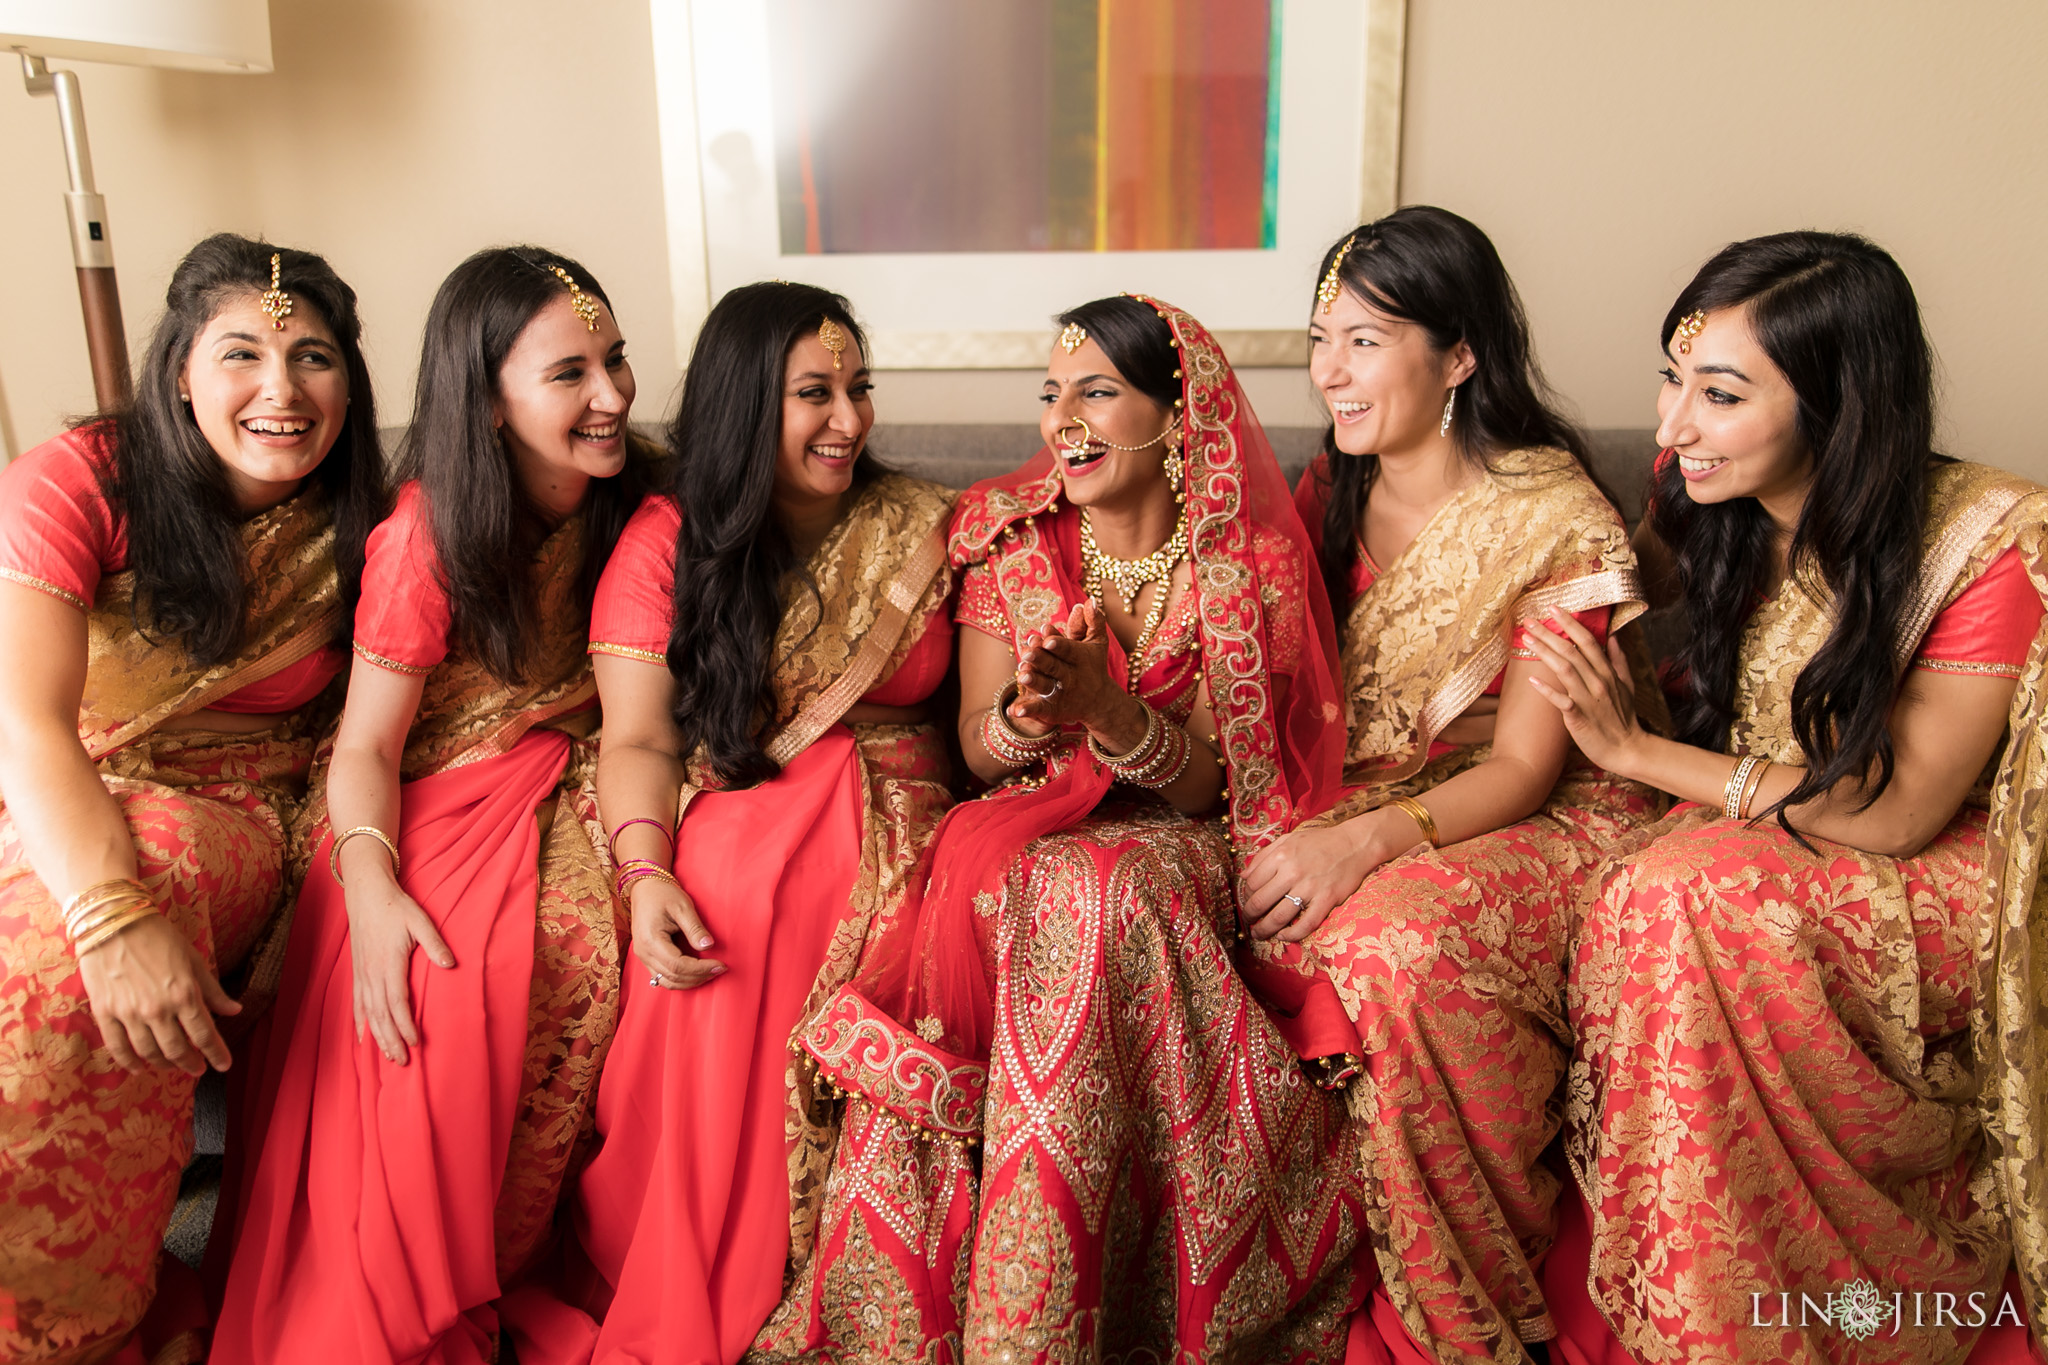 26 newport beach marriott hotel indian wedding bridesmaids photography